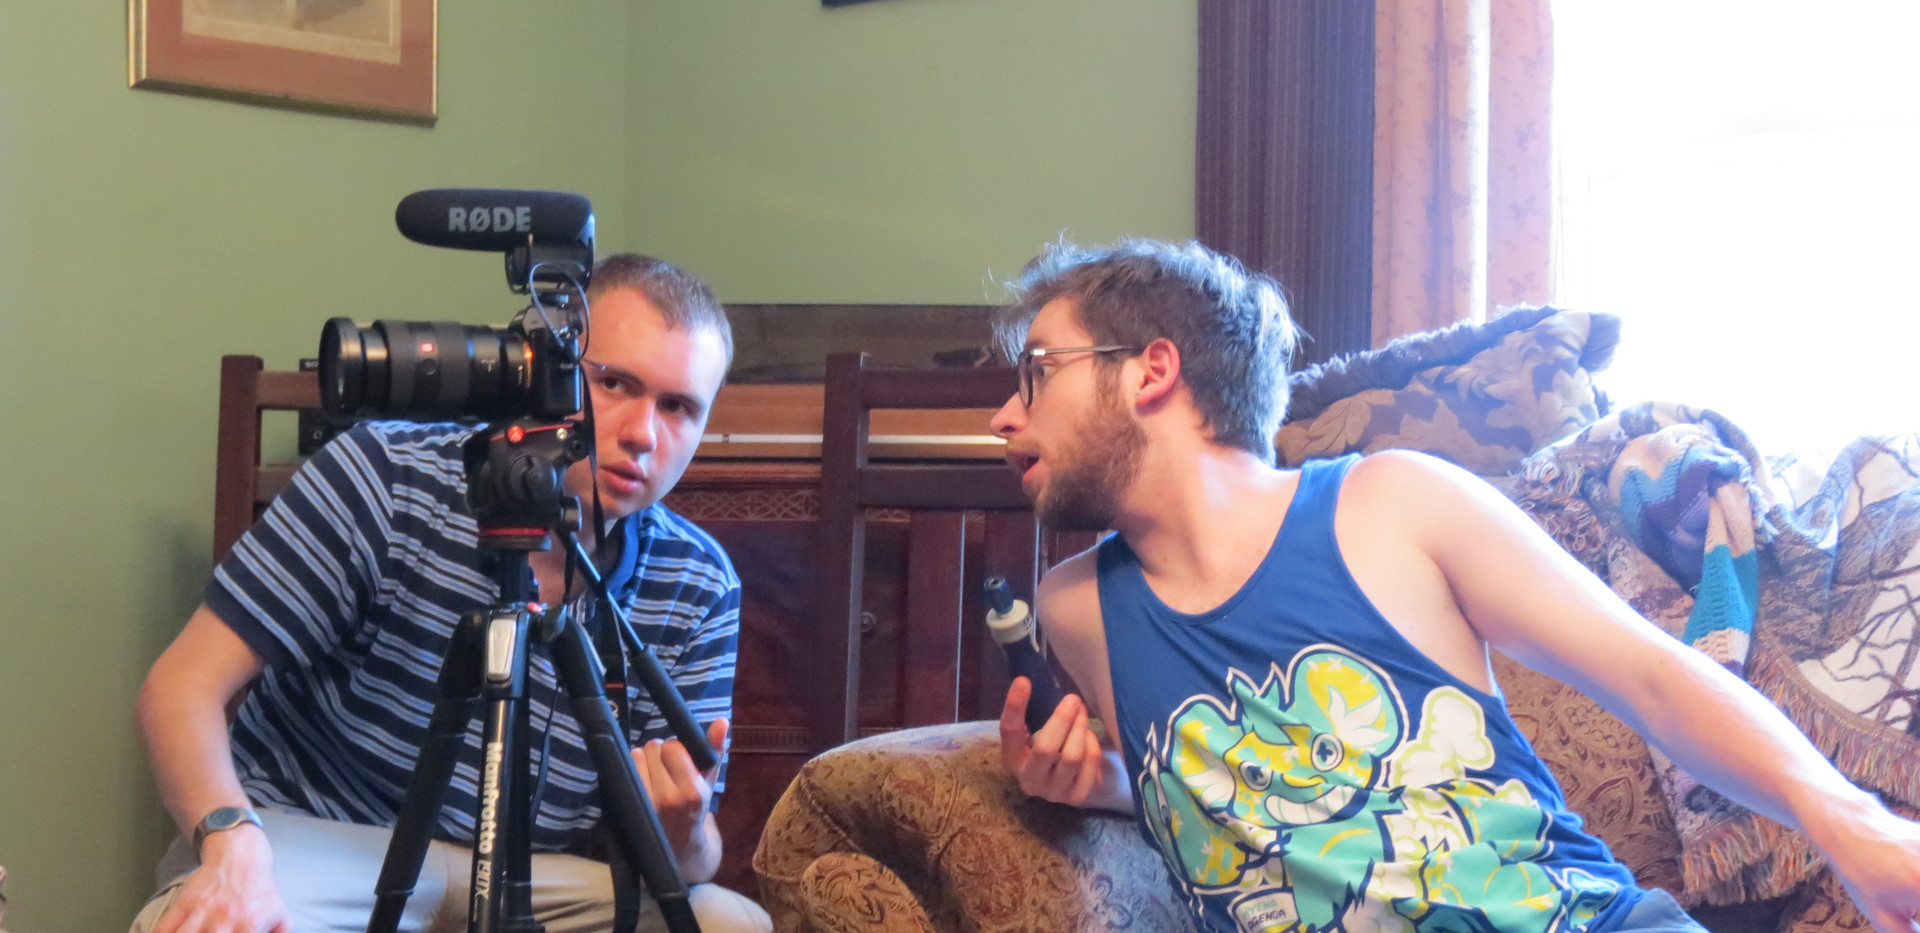 Assessing the composition with Skye King (DP, Producer) on the set of A Story Revealed.